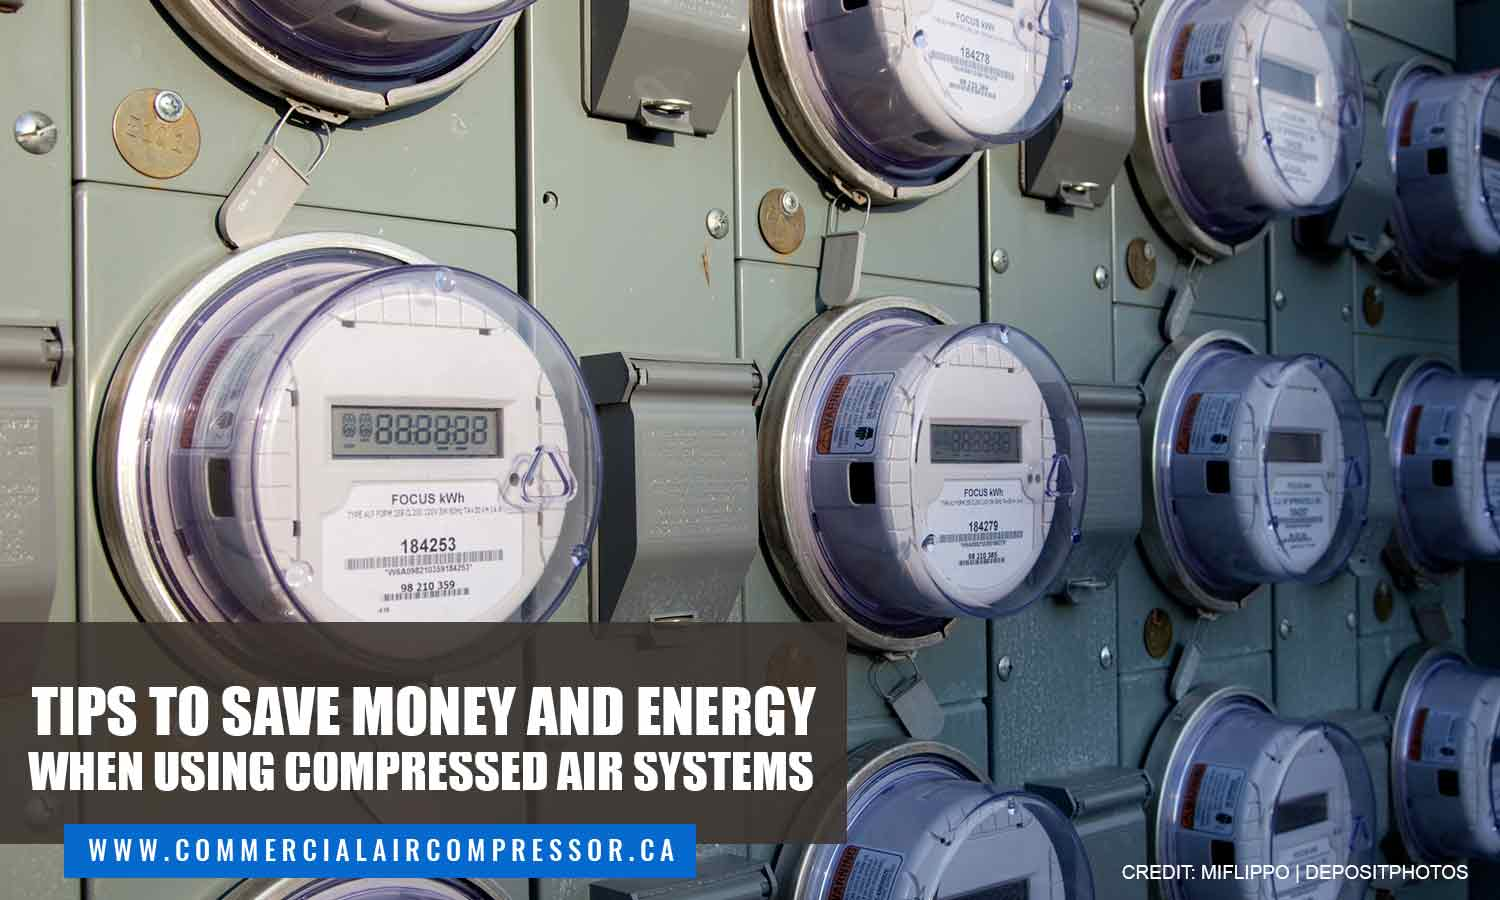 Tips to Save Money and Energy When Using Compressed Air Systems